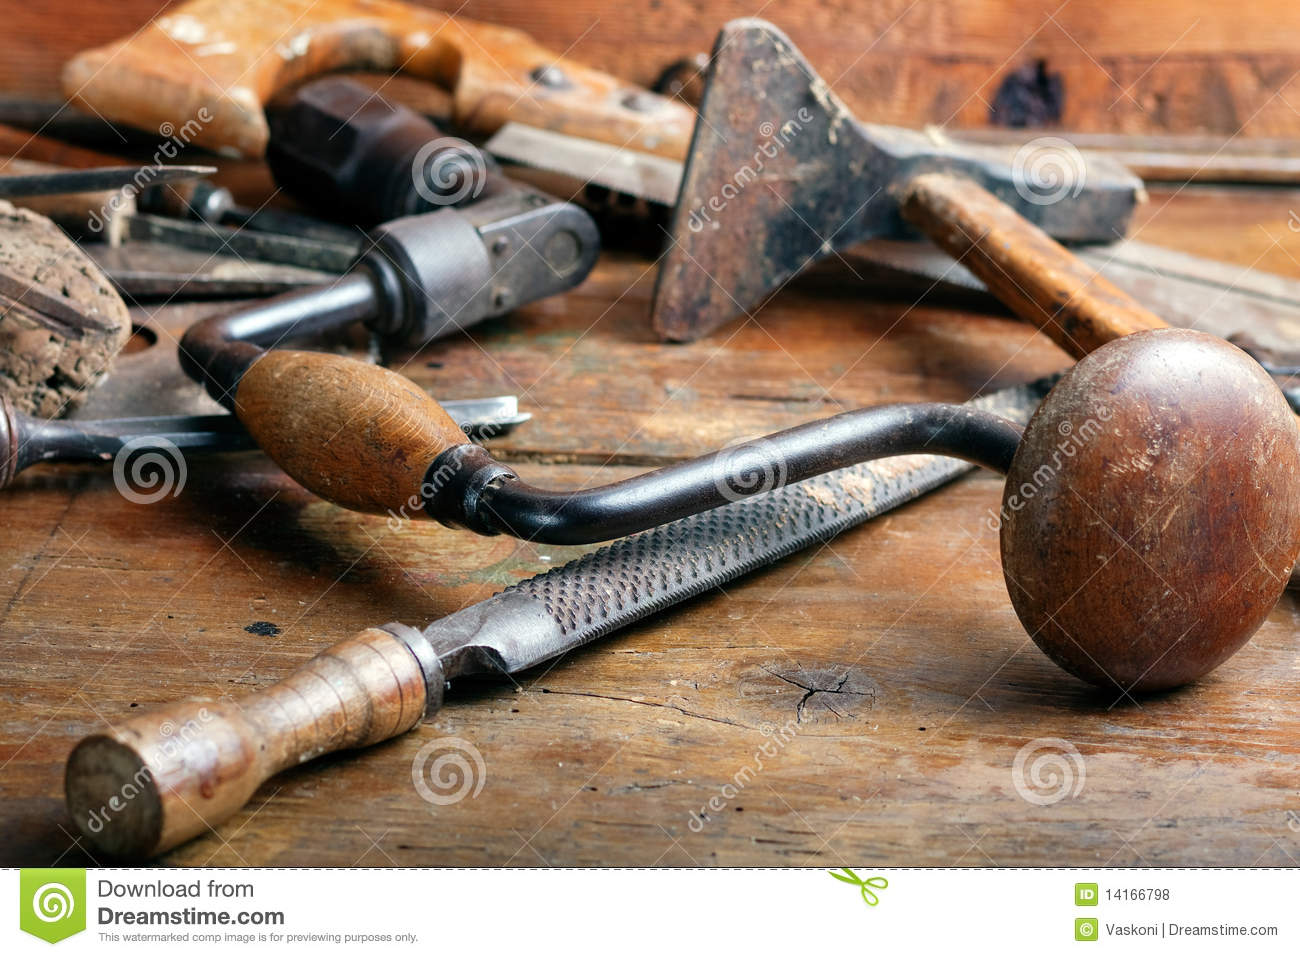 Vintage woodworking tools royalty free stock photos for Travail du bois flotte